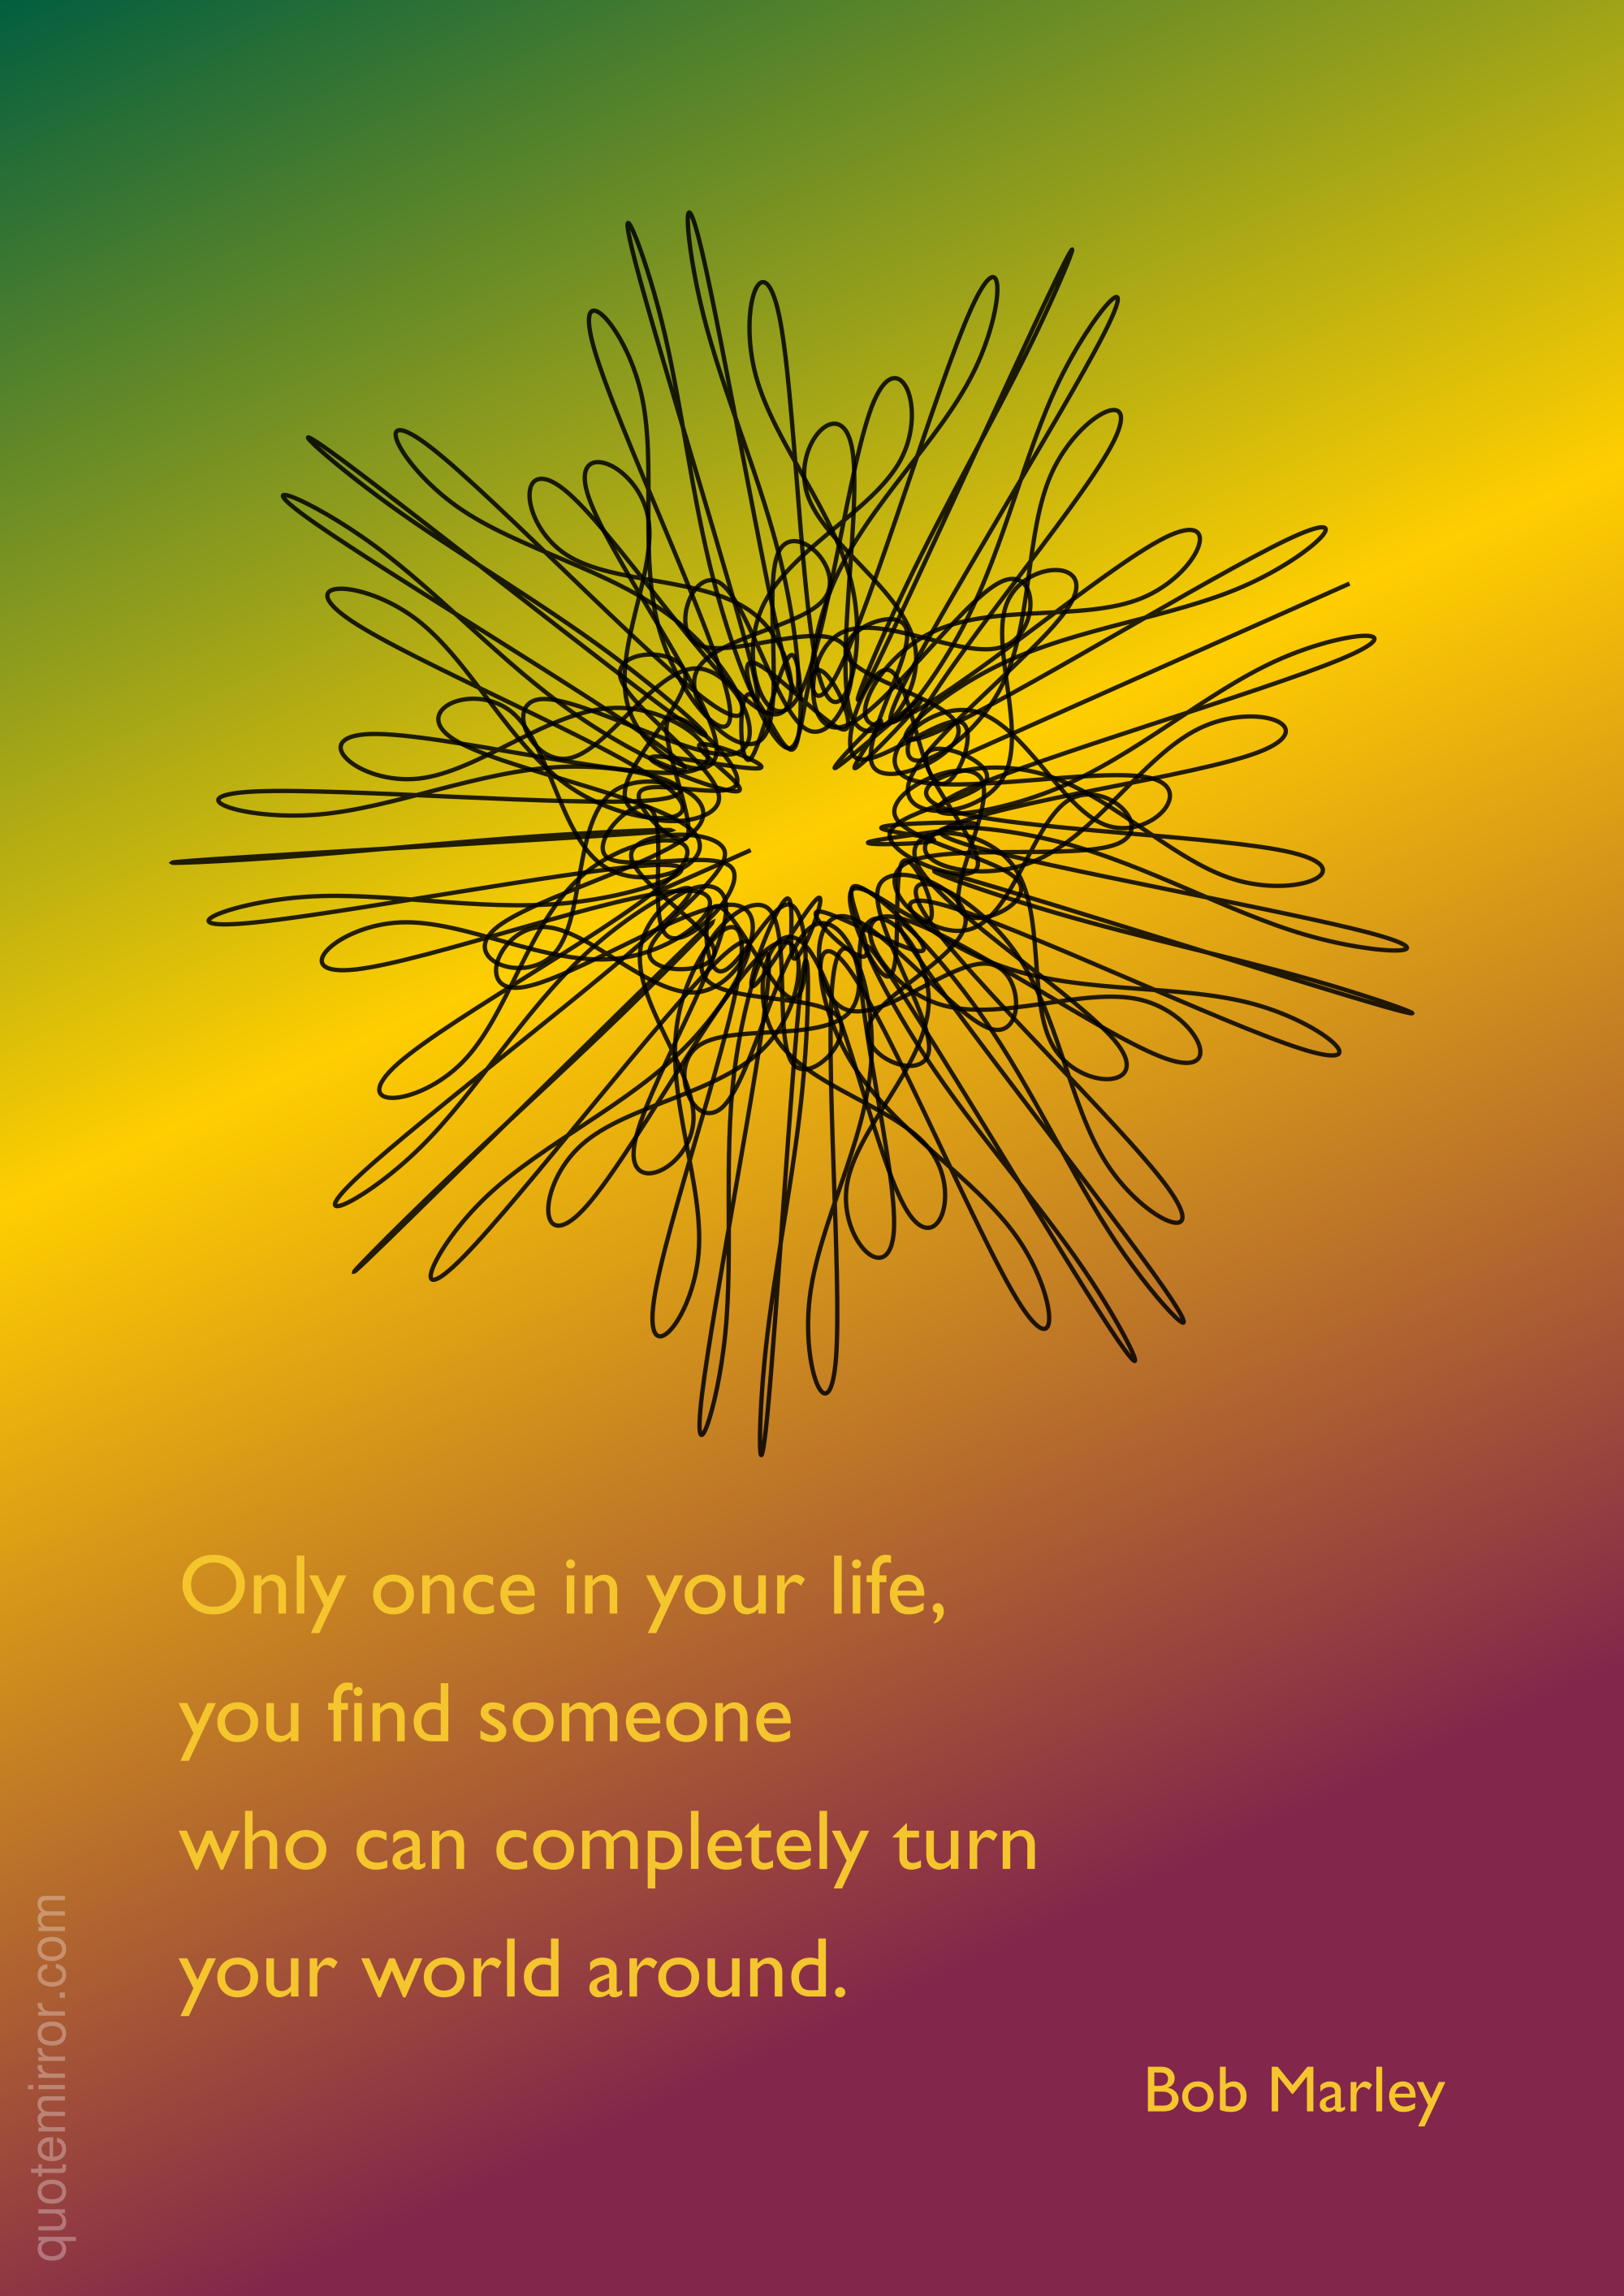 Only once in your life, you find someone who can completely turn your world around. –Bob Marley #life #someone #world http://www.quotemirror.com/bob-marley-collection-1/only-once-in-your-life/